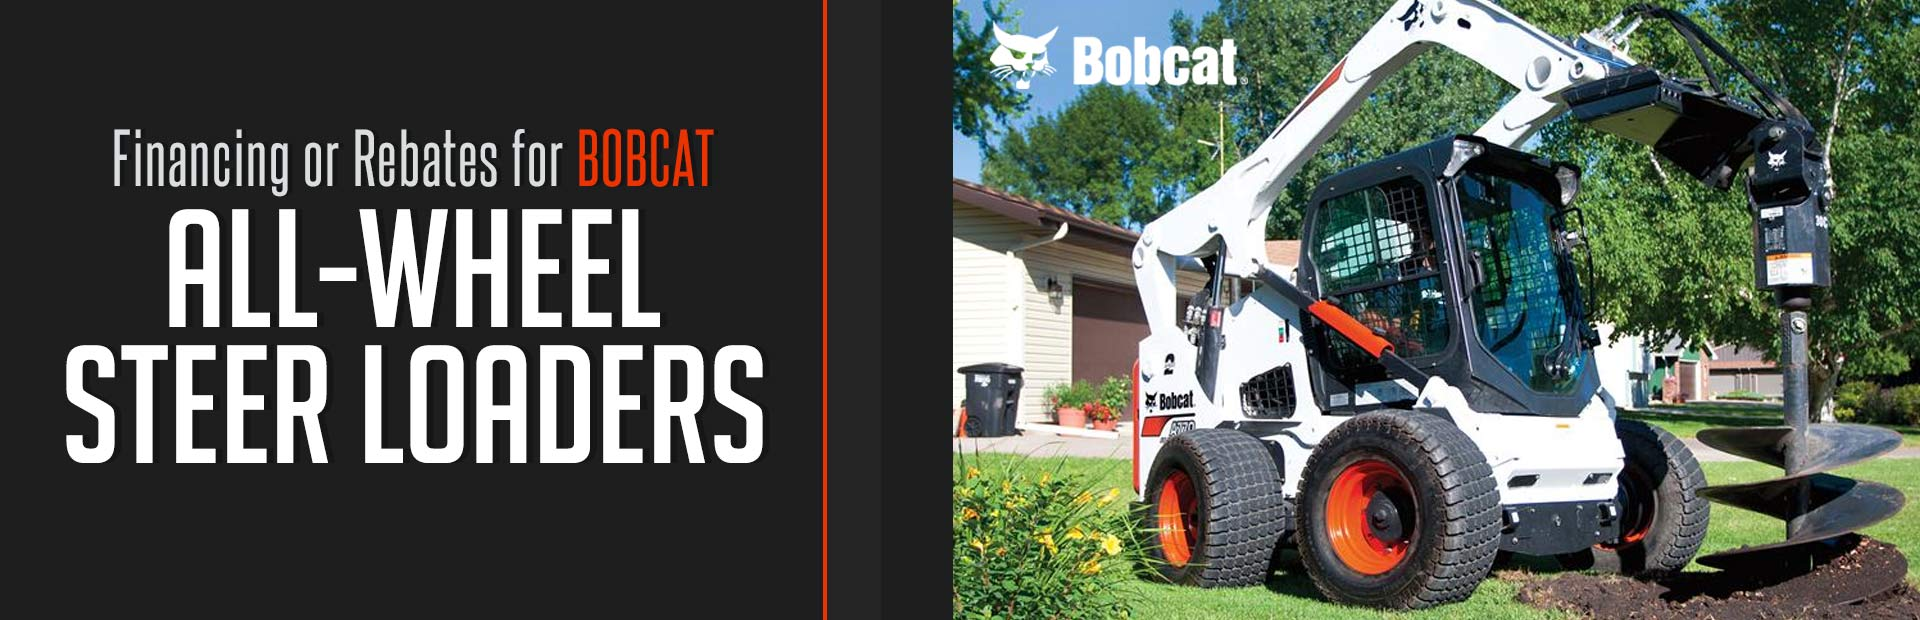 Bobcat: Financing or Rebates for All-Wheel Steer Loaders